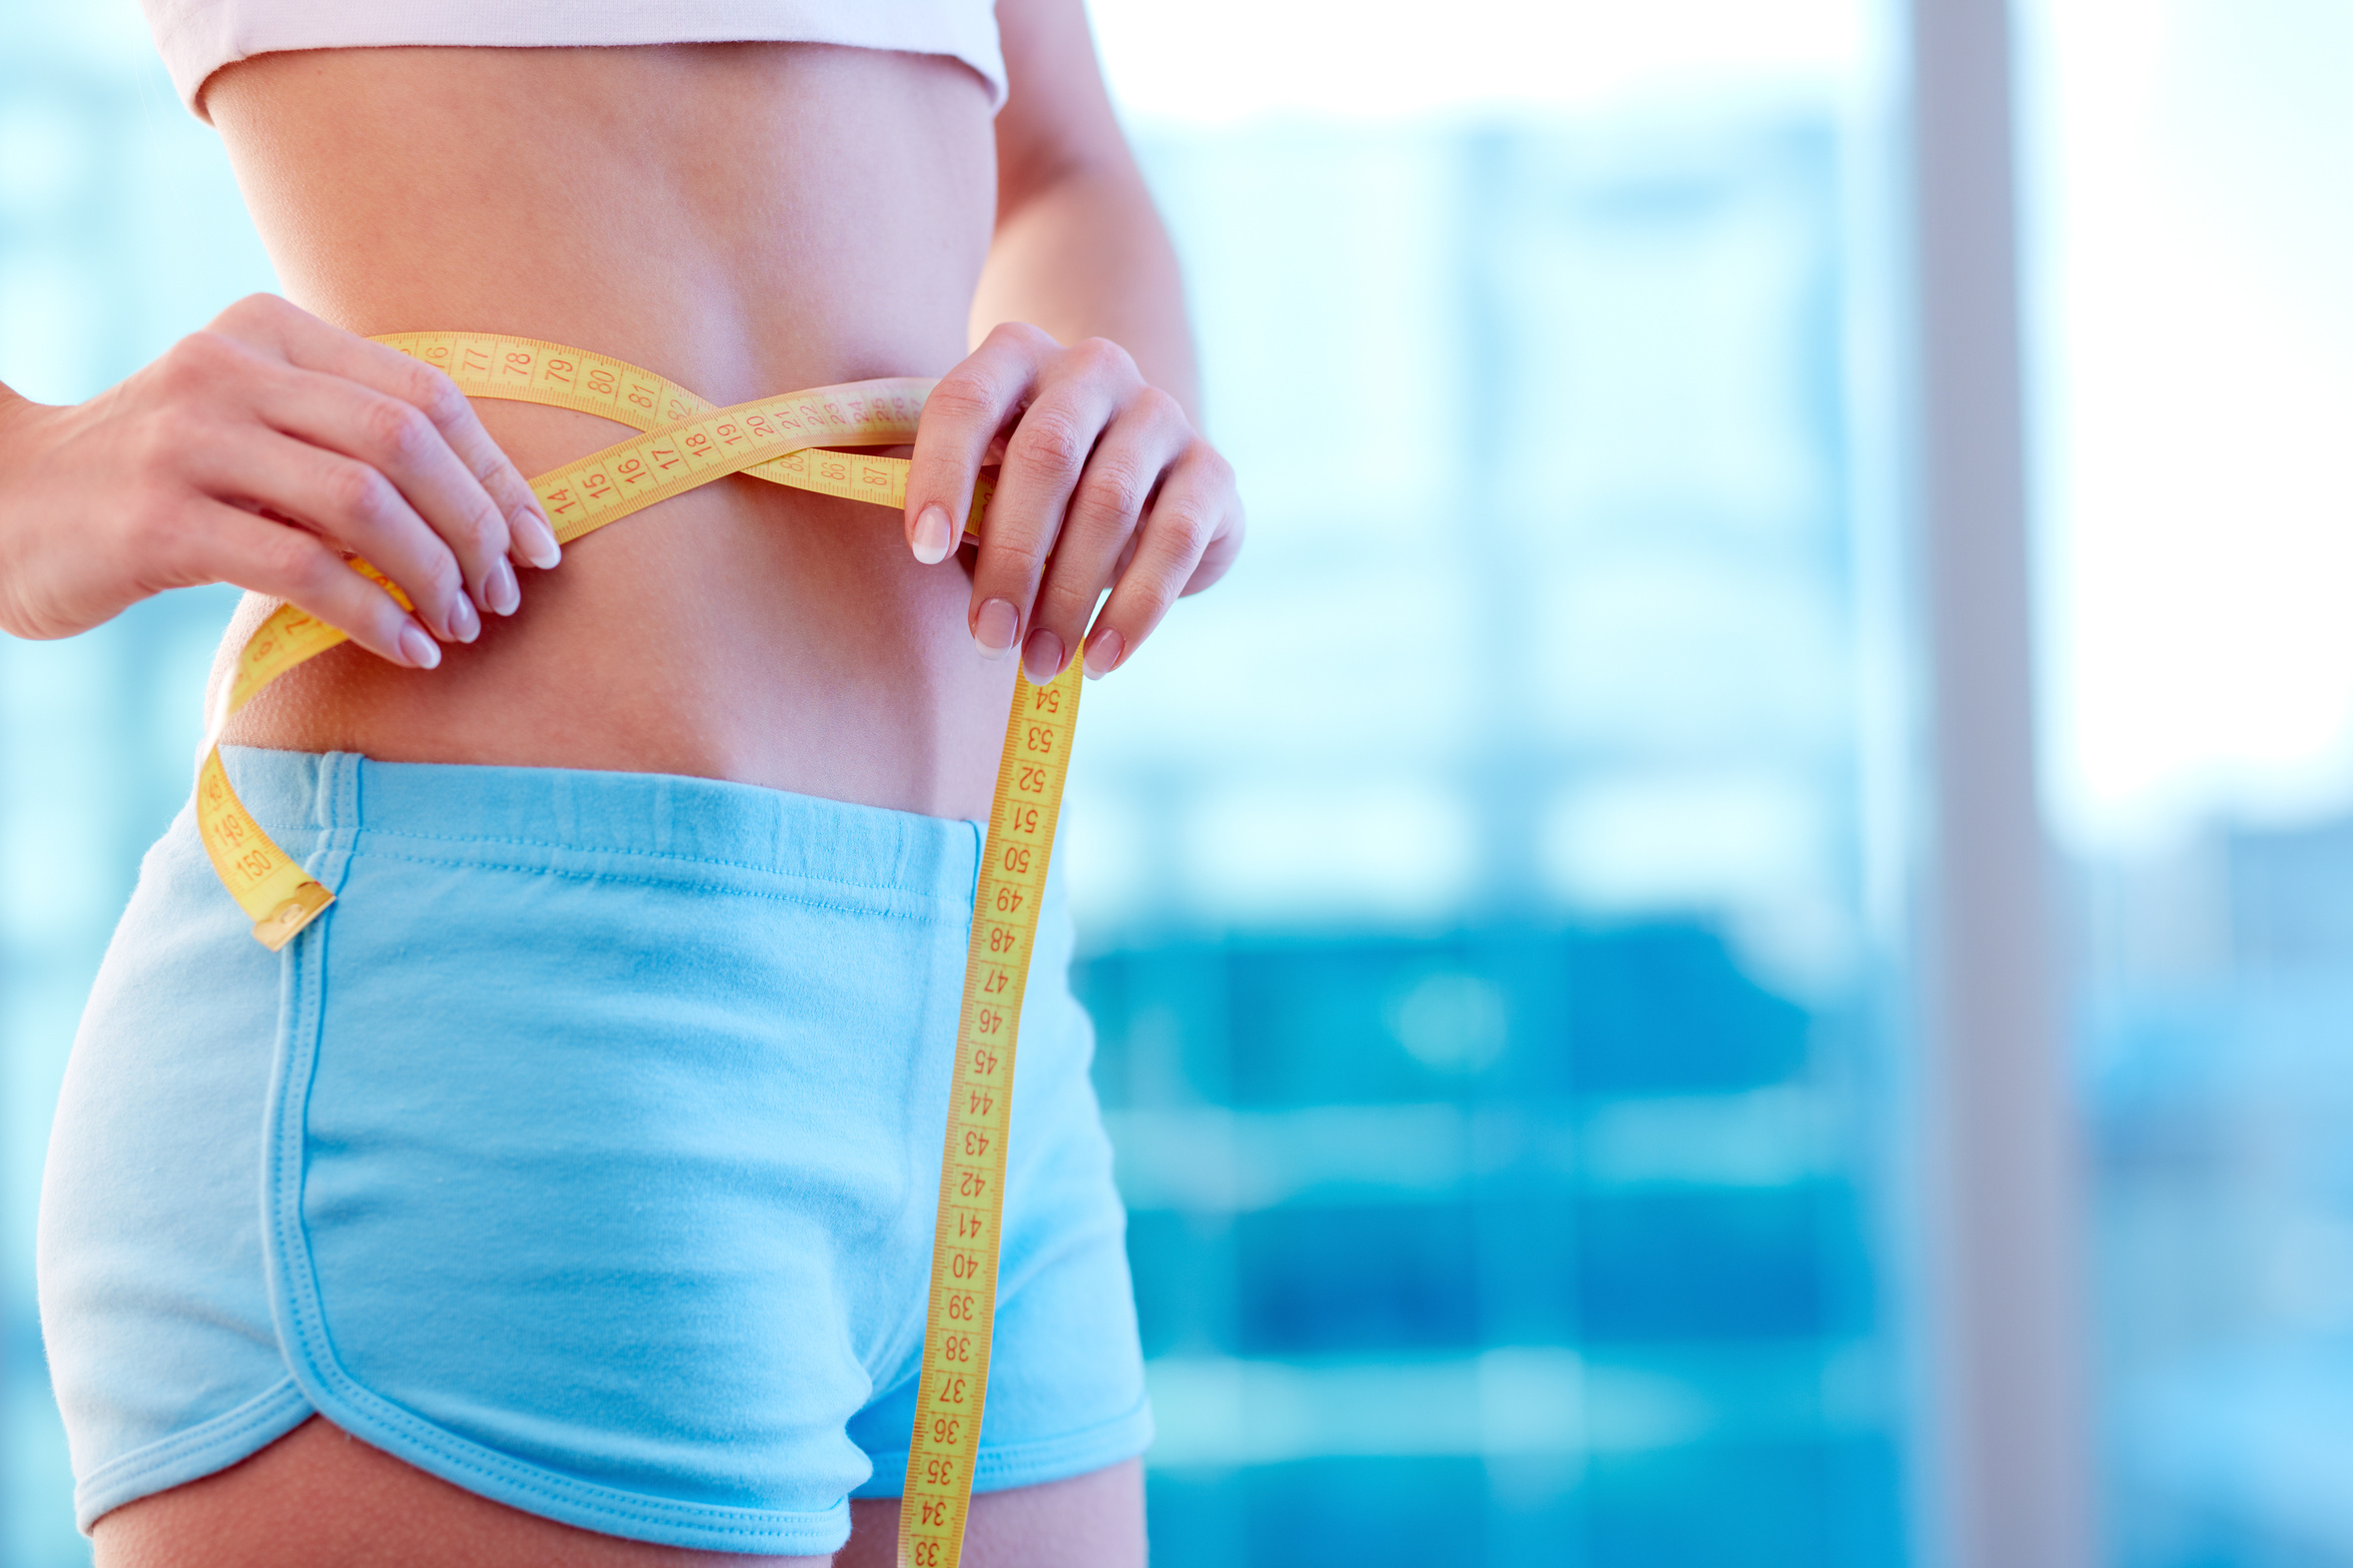 8 Science-Based Weight Loss Tips